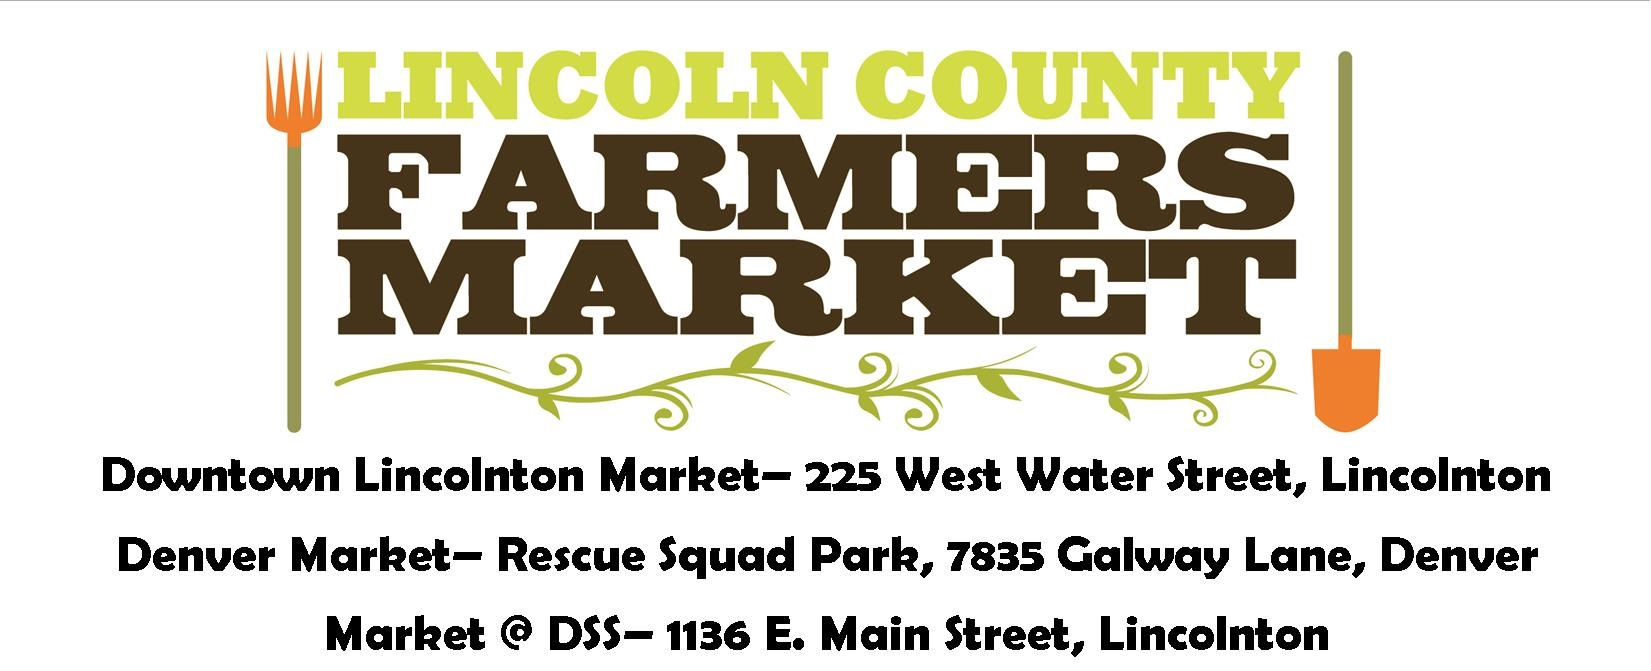 Image courtesy: Lincoln County Farmers Market